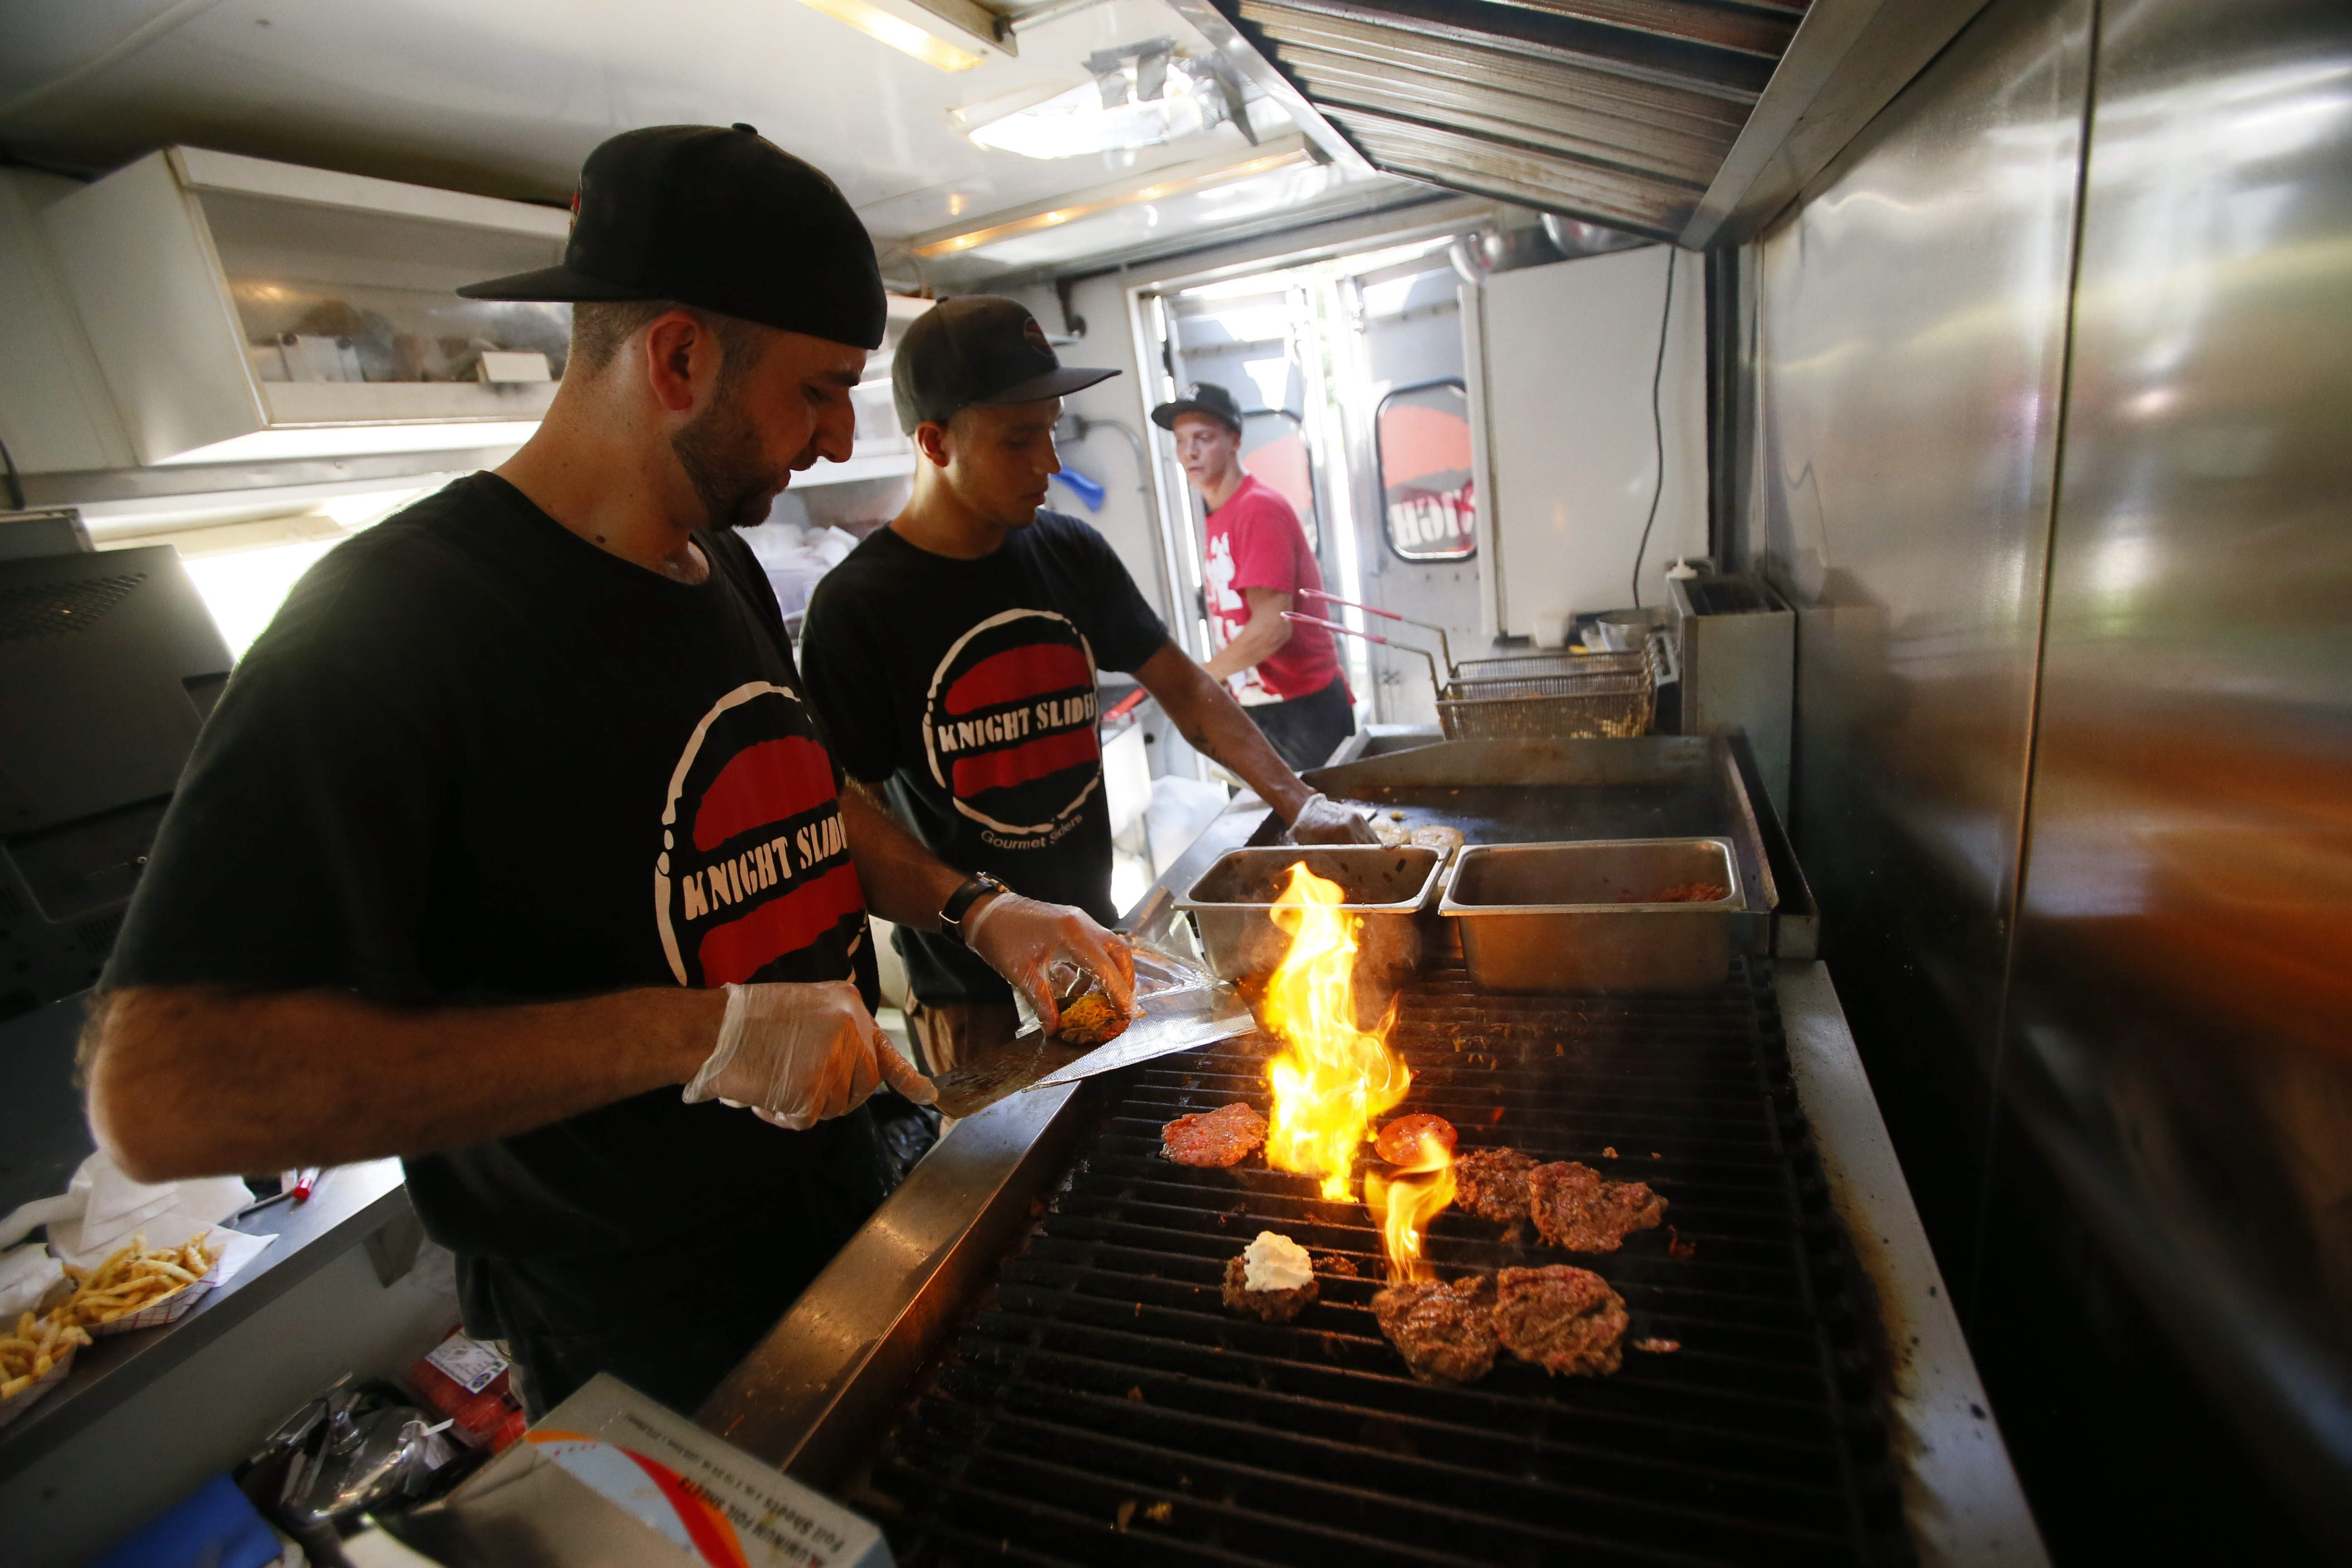 """Ayoub """"Mike"""" Abboud and his Knight Slider food truck is expected to be in Larkinville from 5 to 8 p.m. Tuesday for Food Truck Tuesday."""